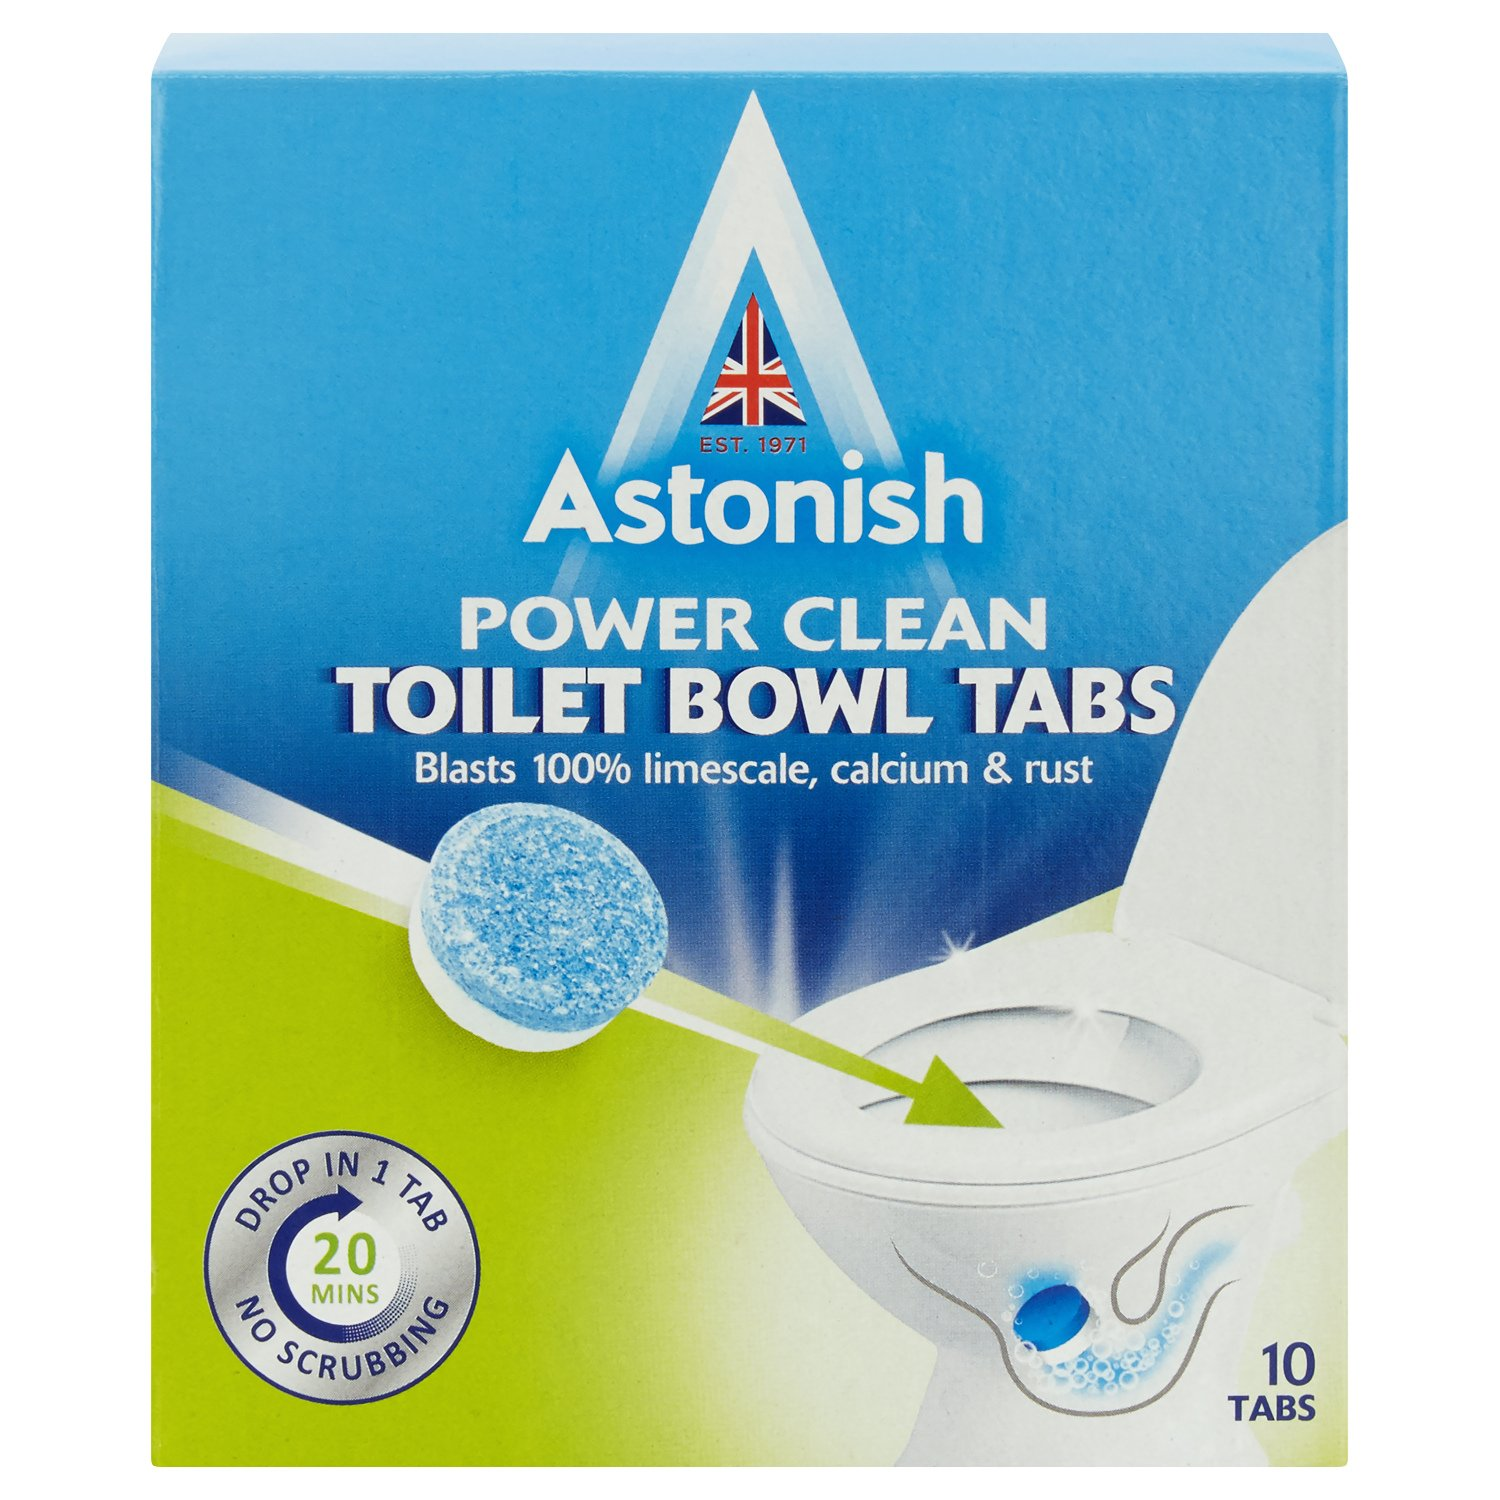 Astonish Toilet Bowl Cleaner Removes Limescale Remover Limescale Cleaner 10 Tabs AX-AY-ABHI-123888